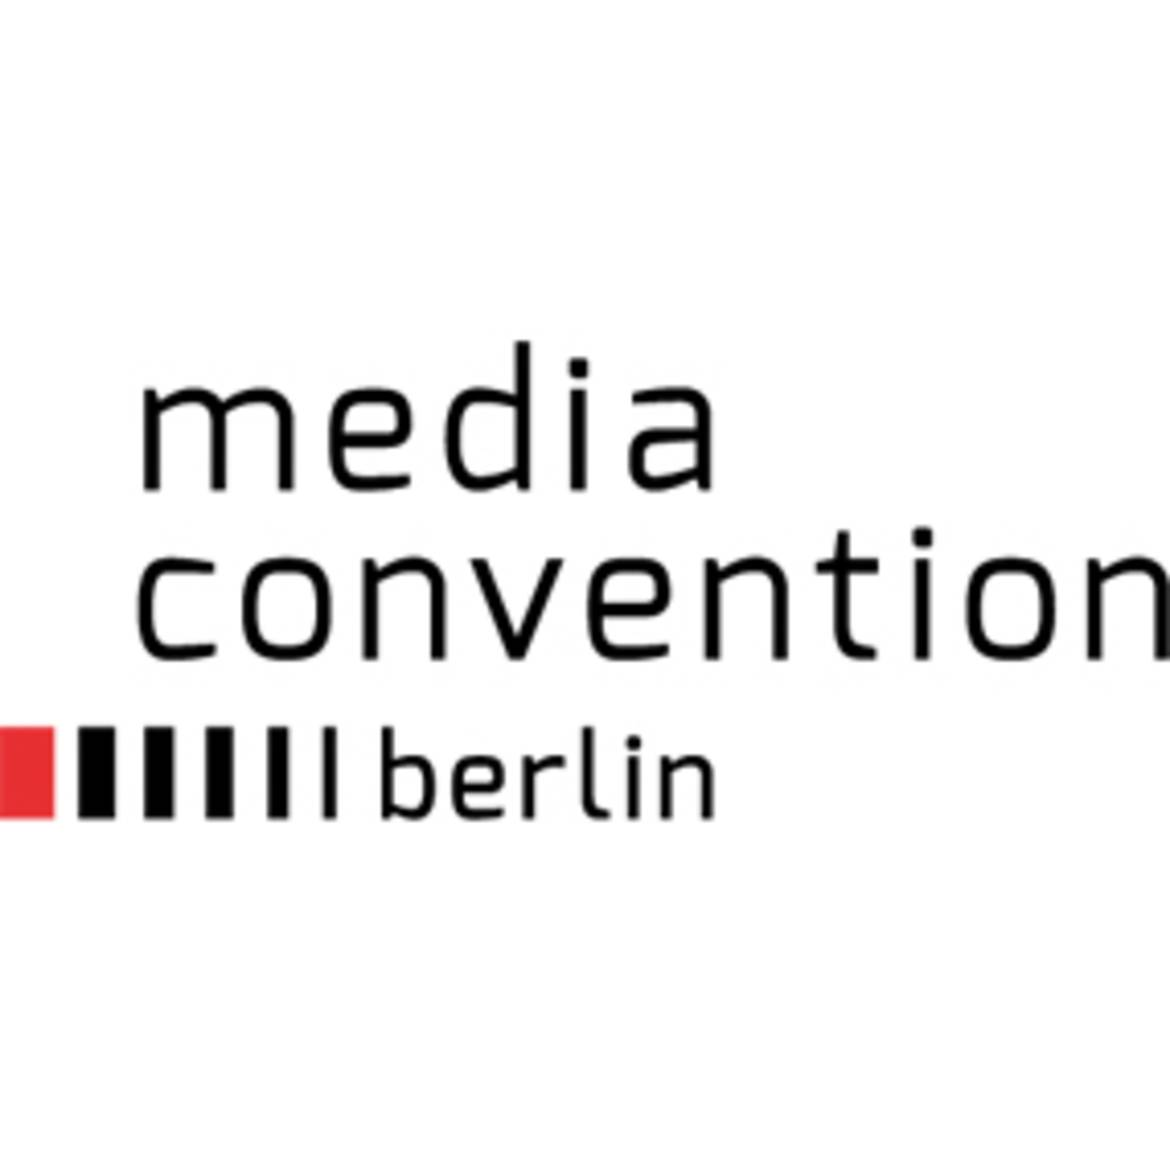 mediaconncention